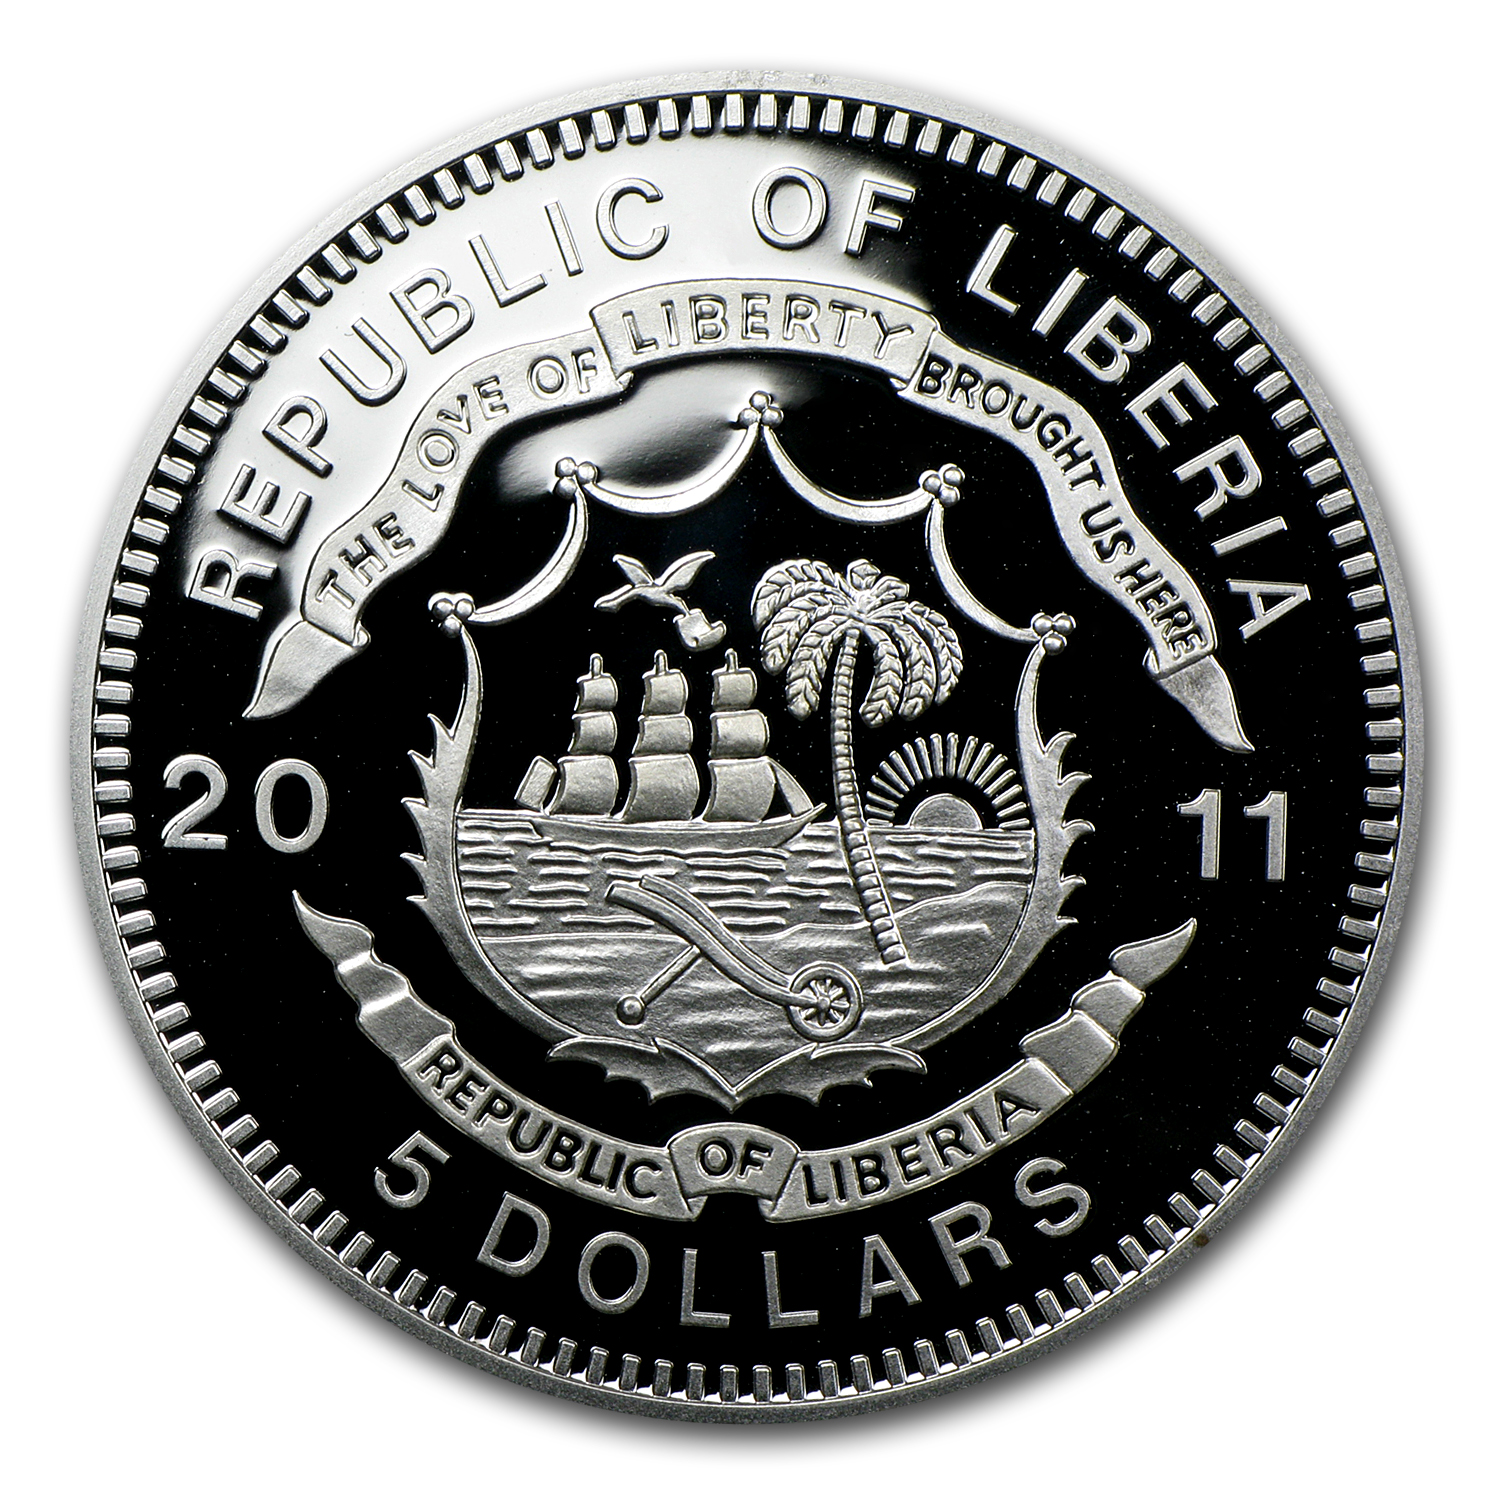 Liberia 2011 5 Dollars Silver Proof - Trans-Siberian Railroad